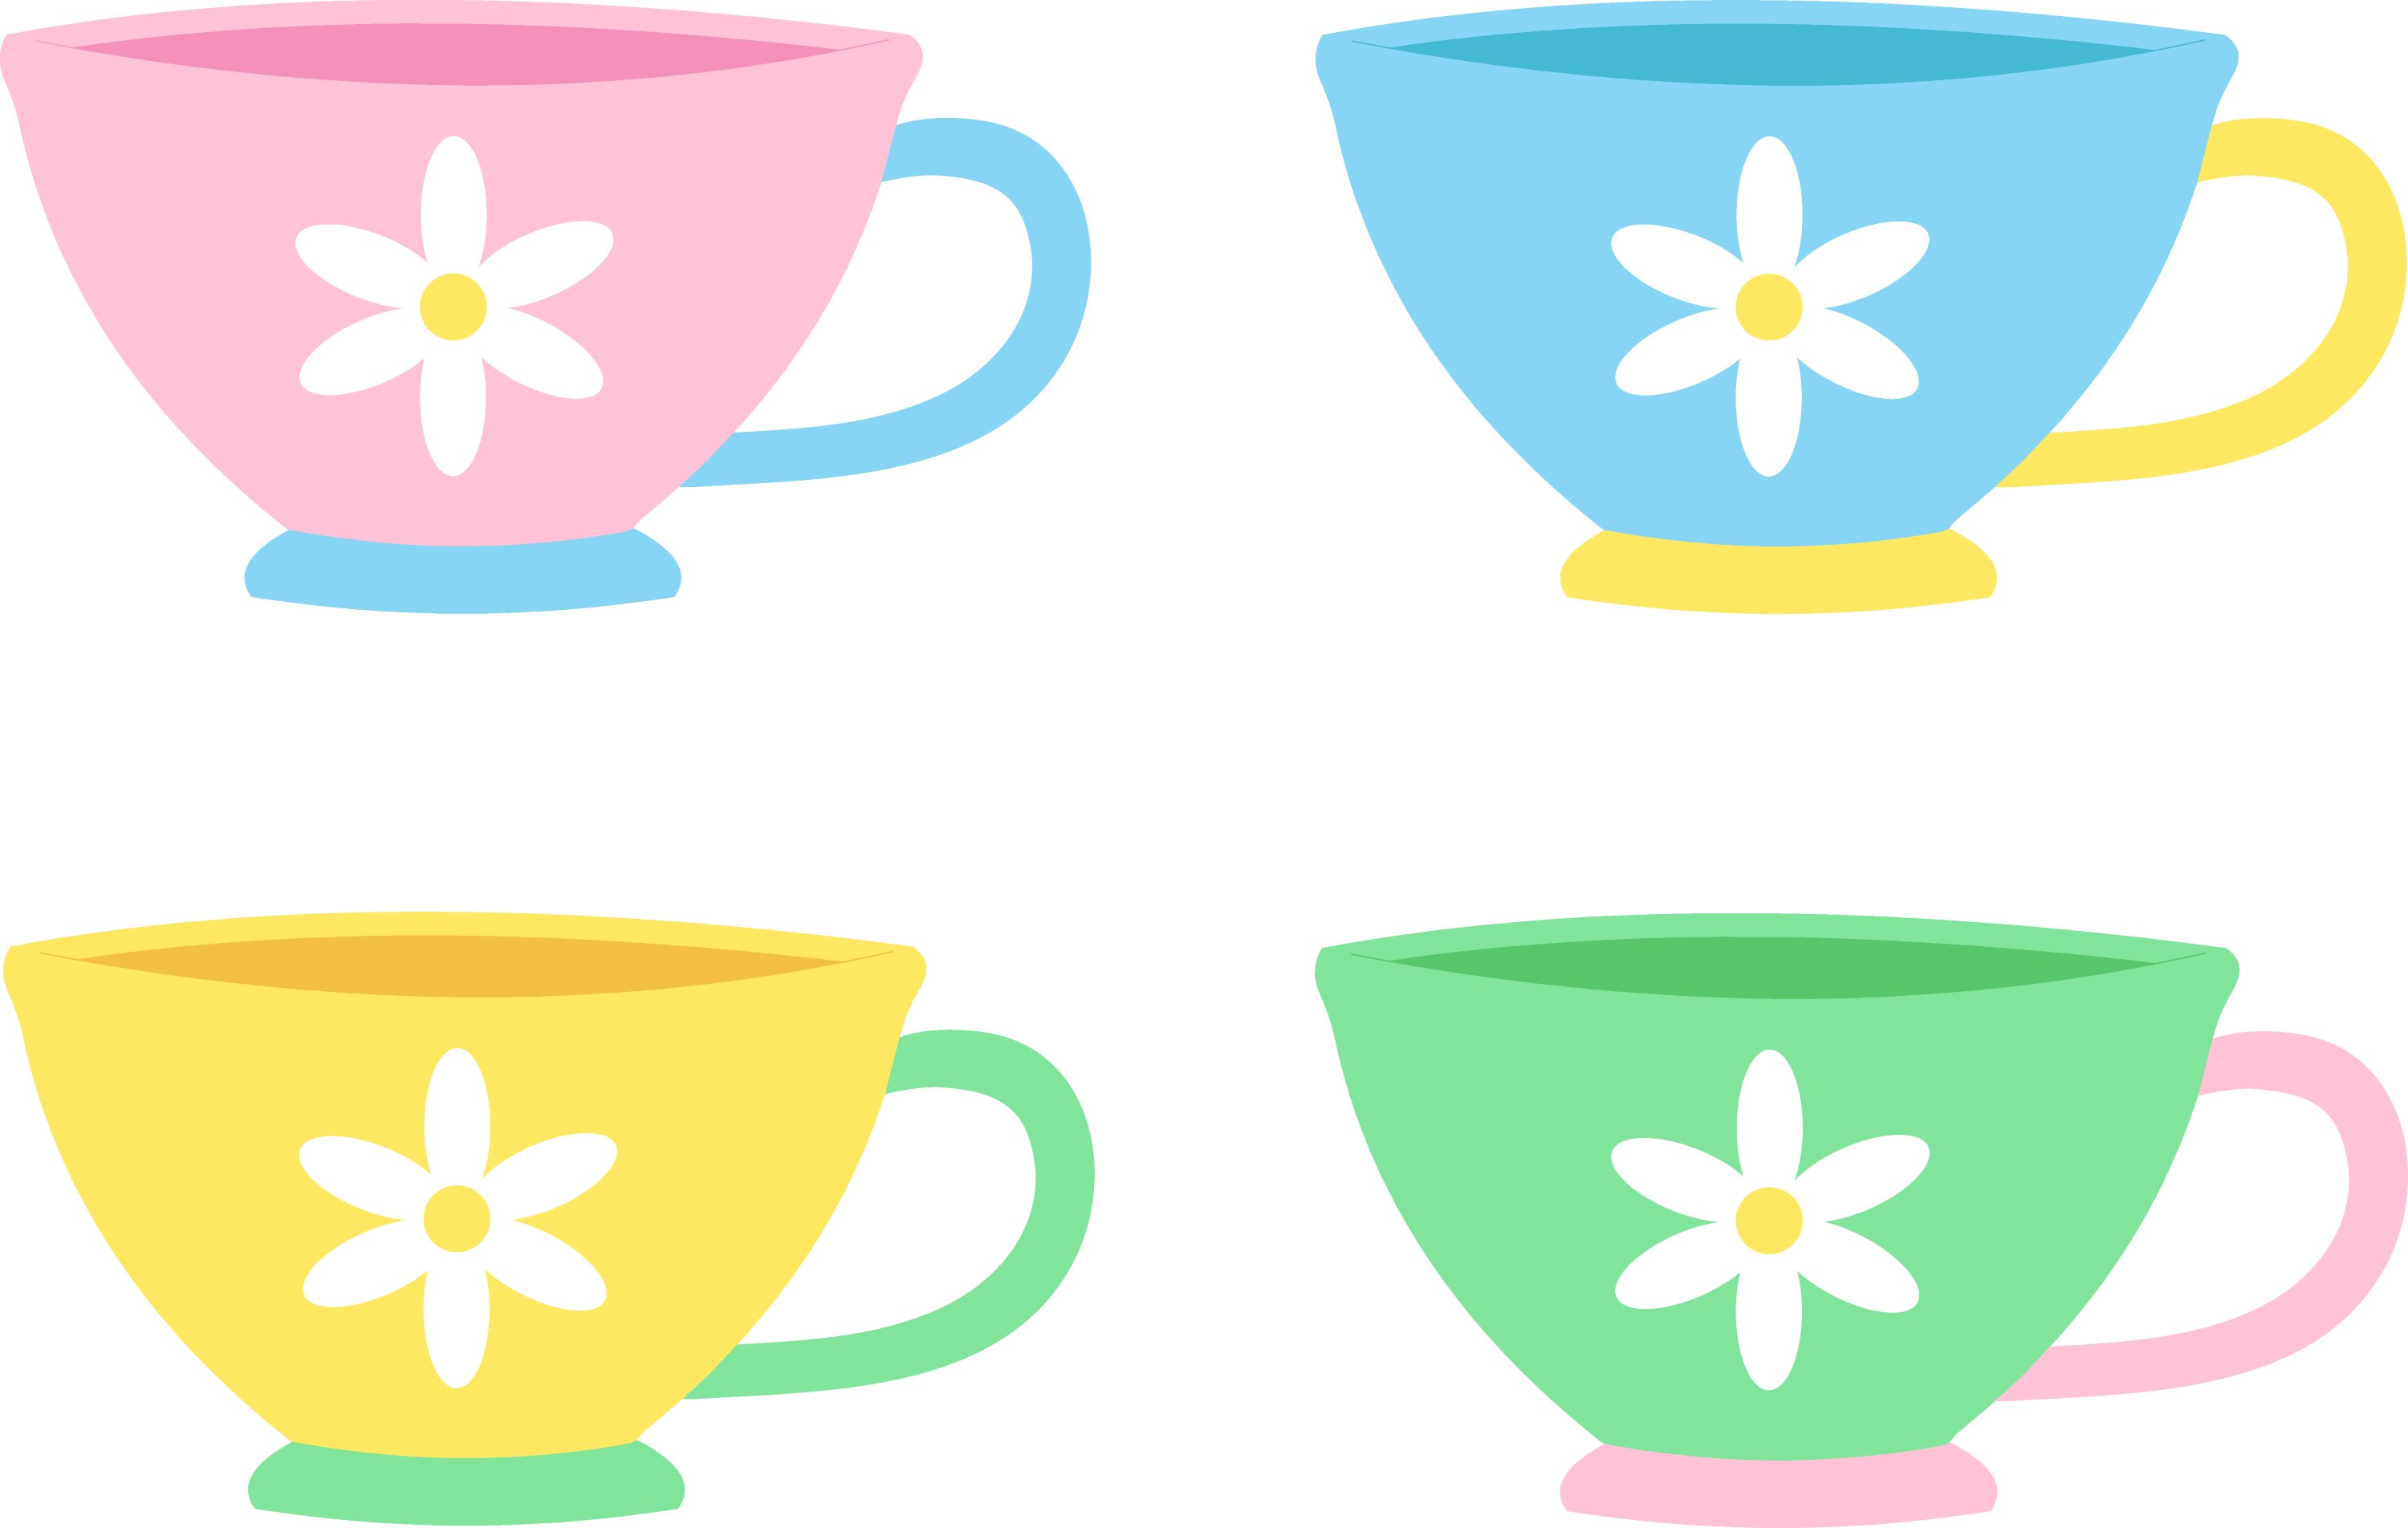 cup clipart free - photo #39